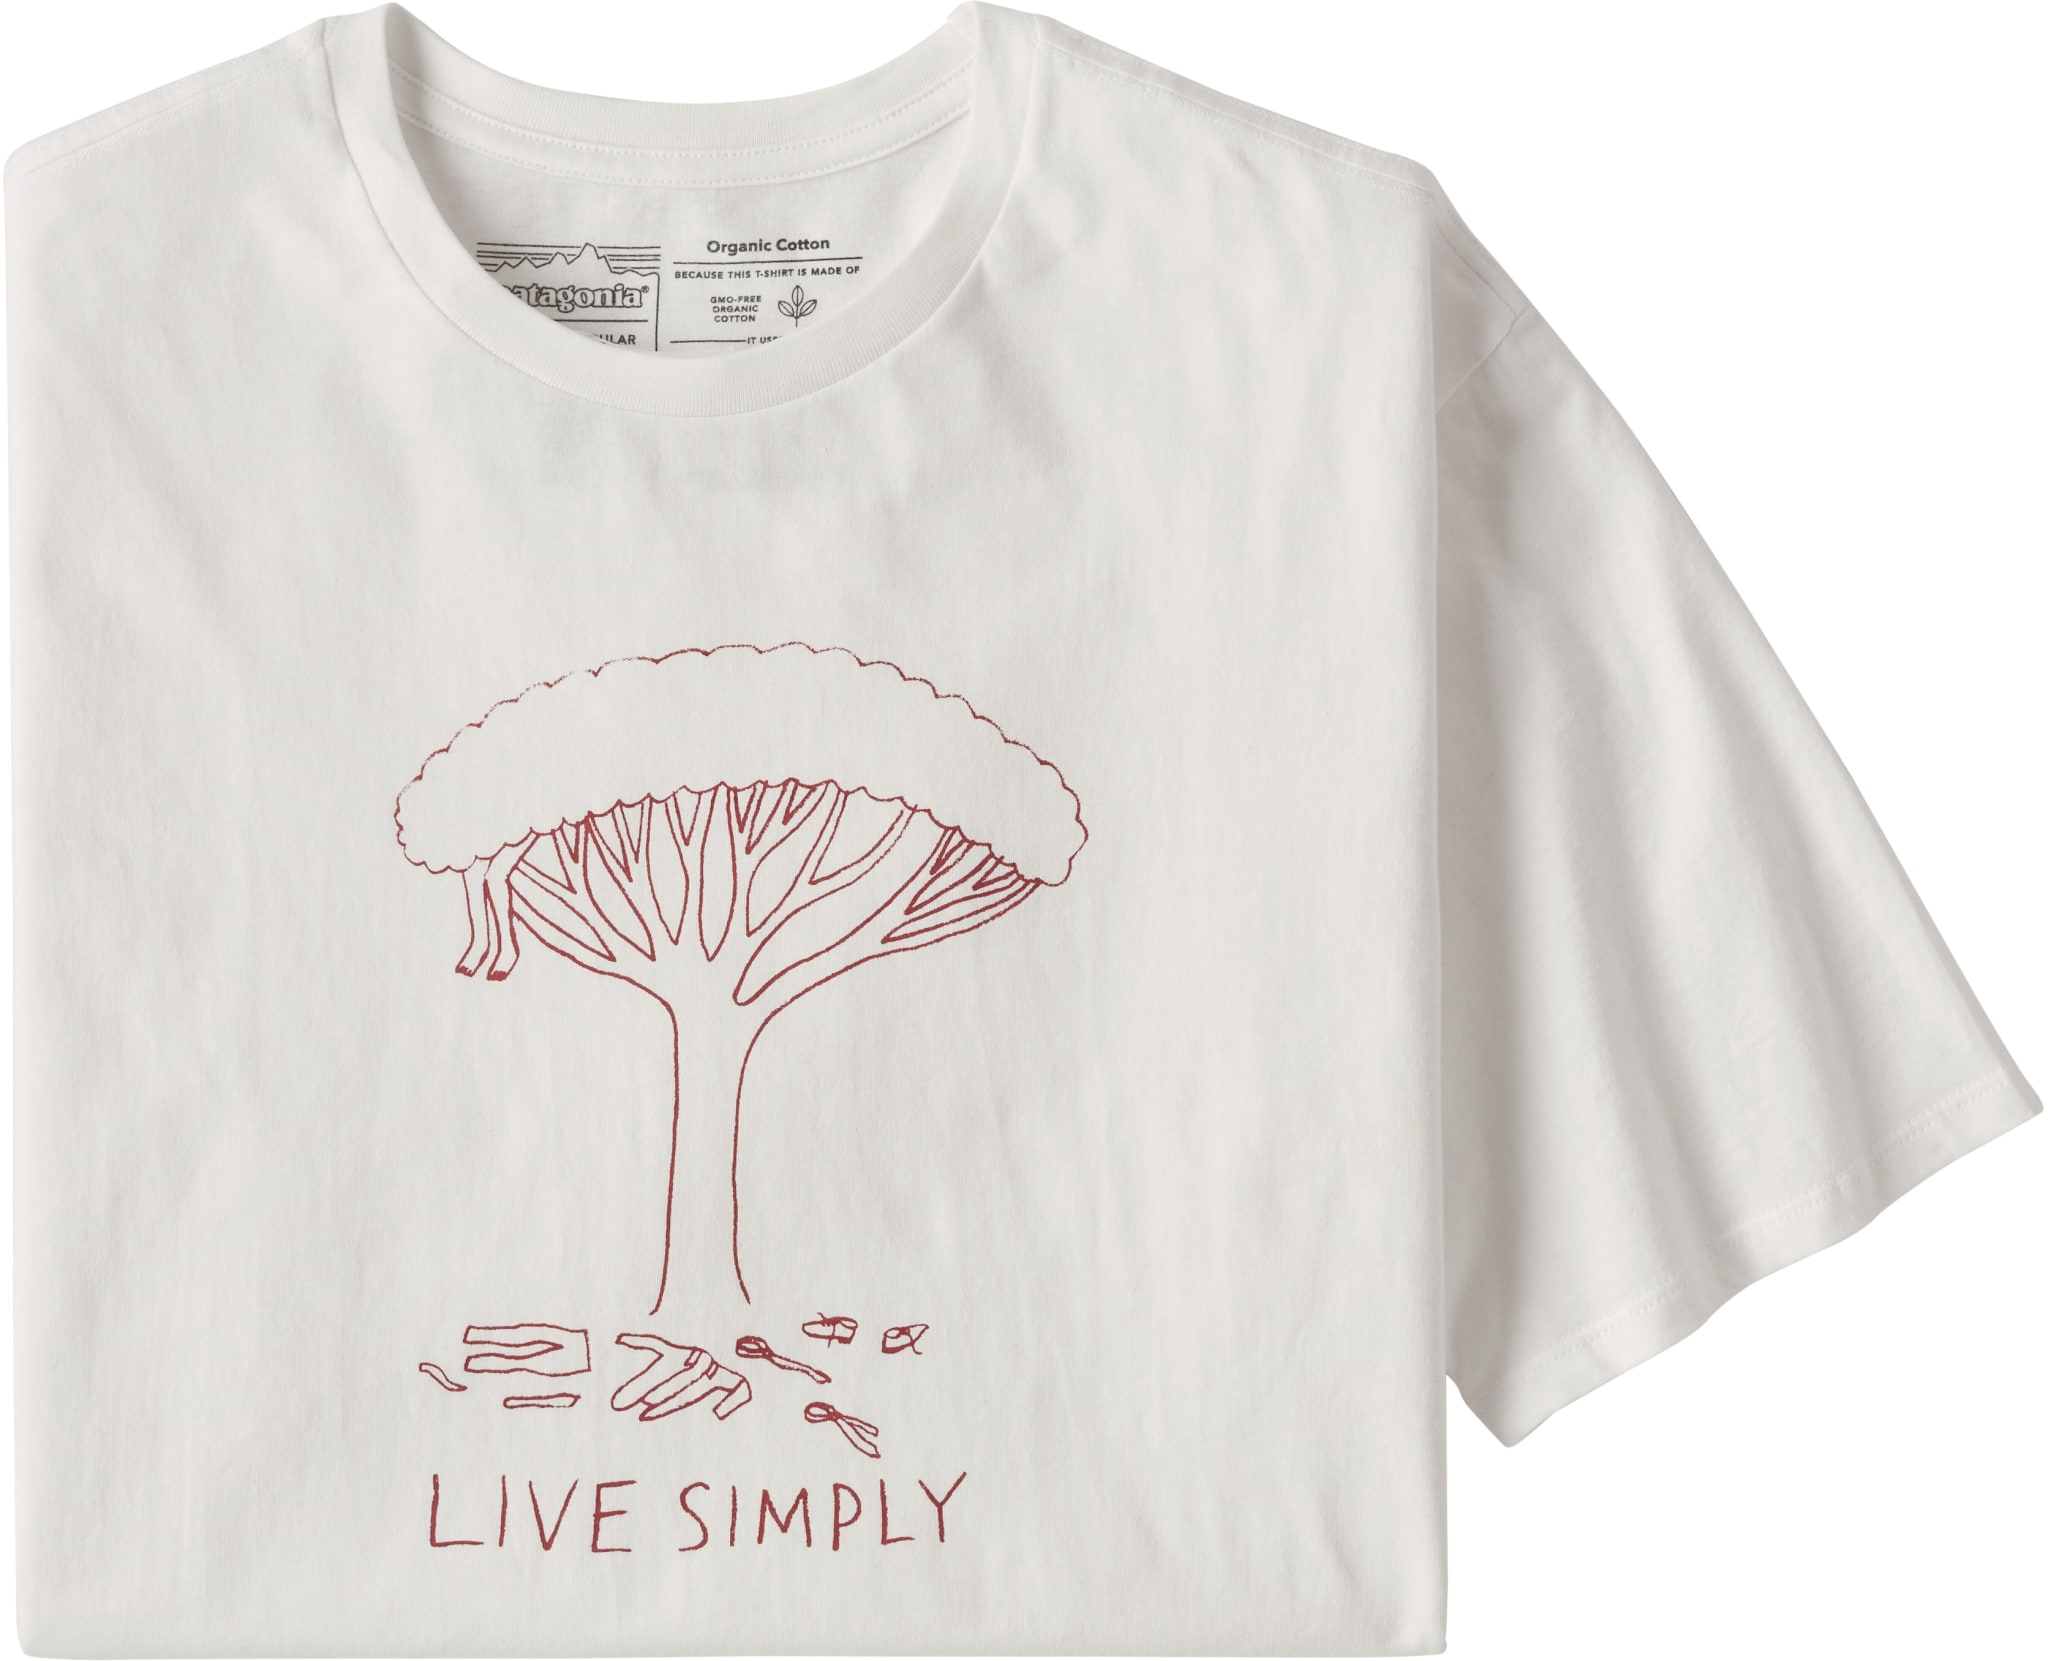 Ms Live Simply Midleaf Crisis Organic Cotton T-Shirt